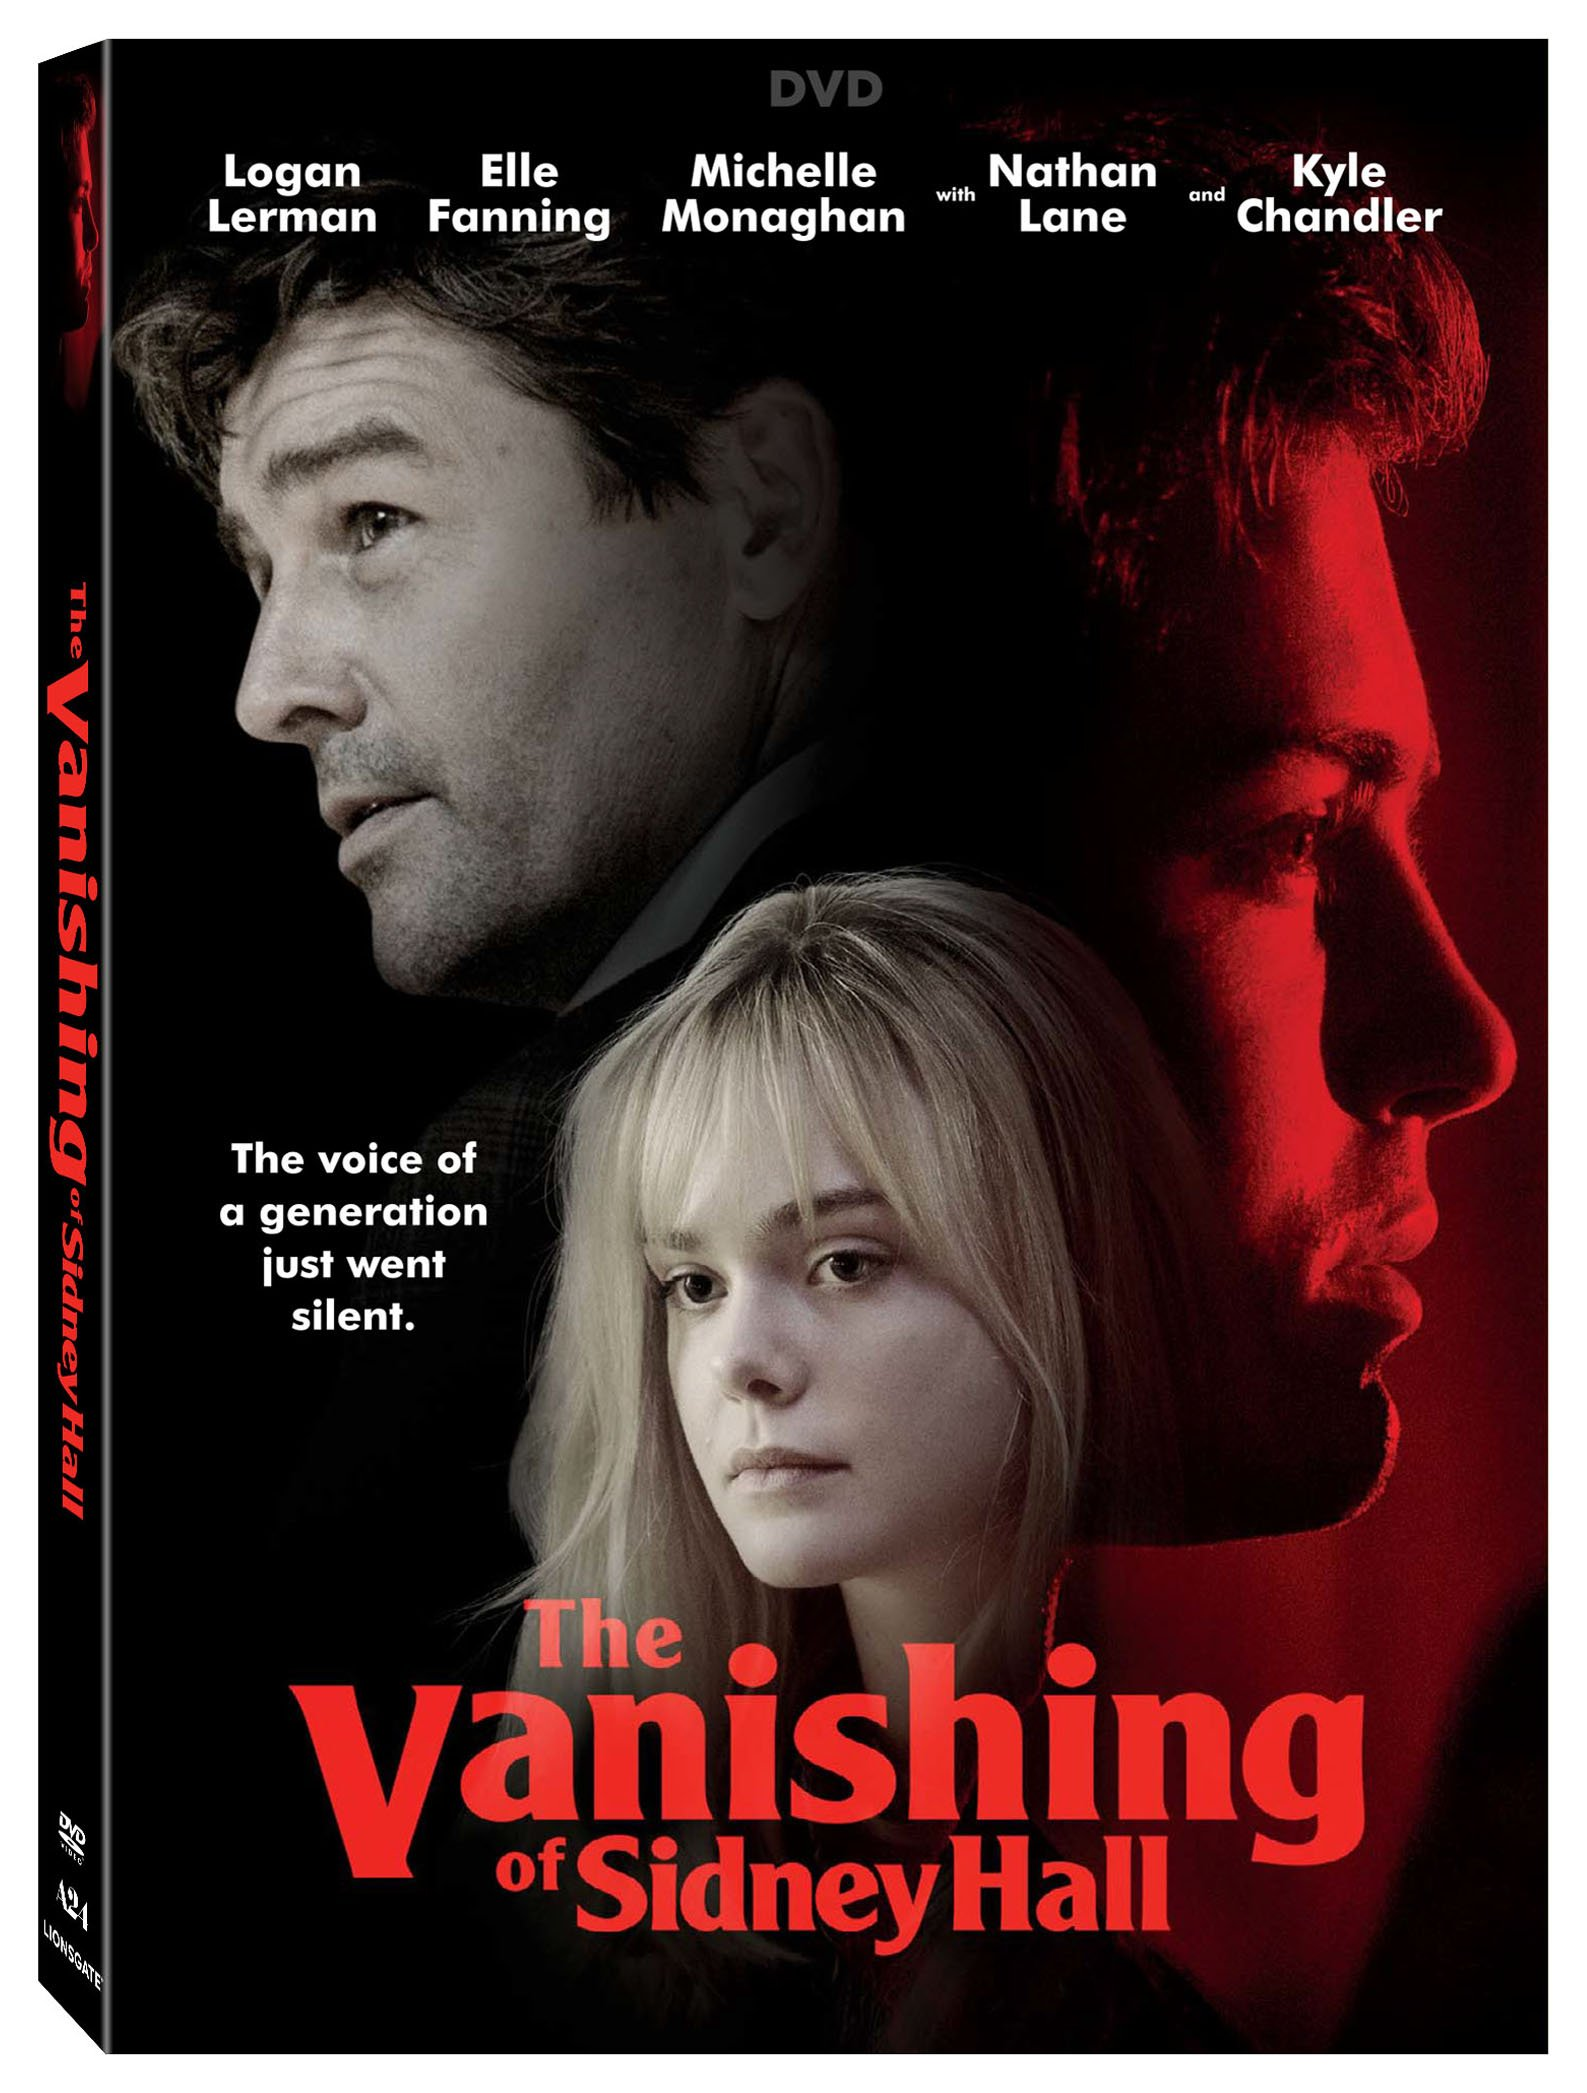 DVD : The Vanishing Of Sidney Hall (Subtitled, Dolby, AC-3, Widescreen)